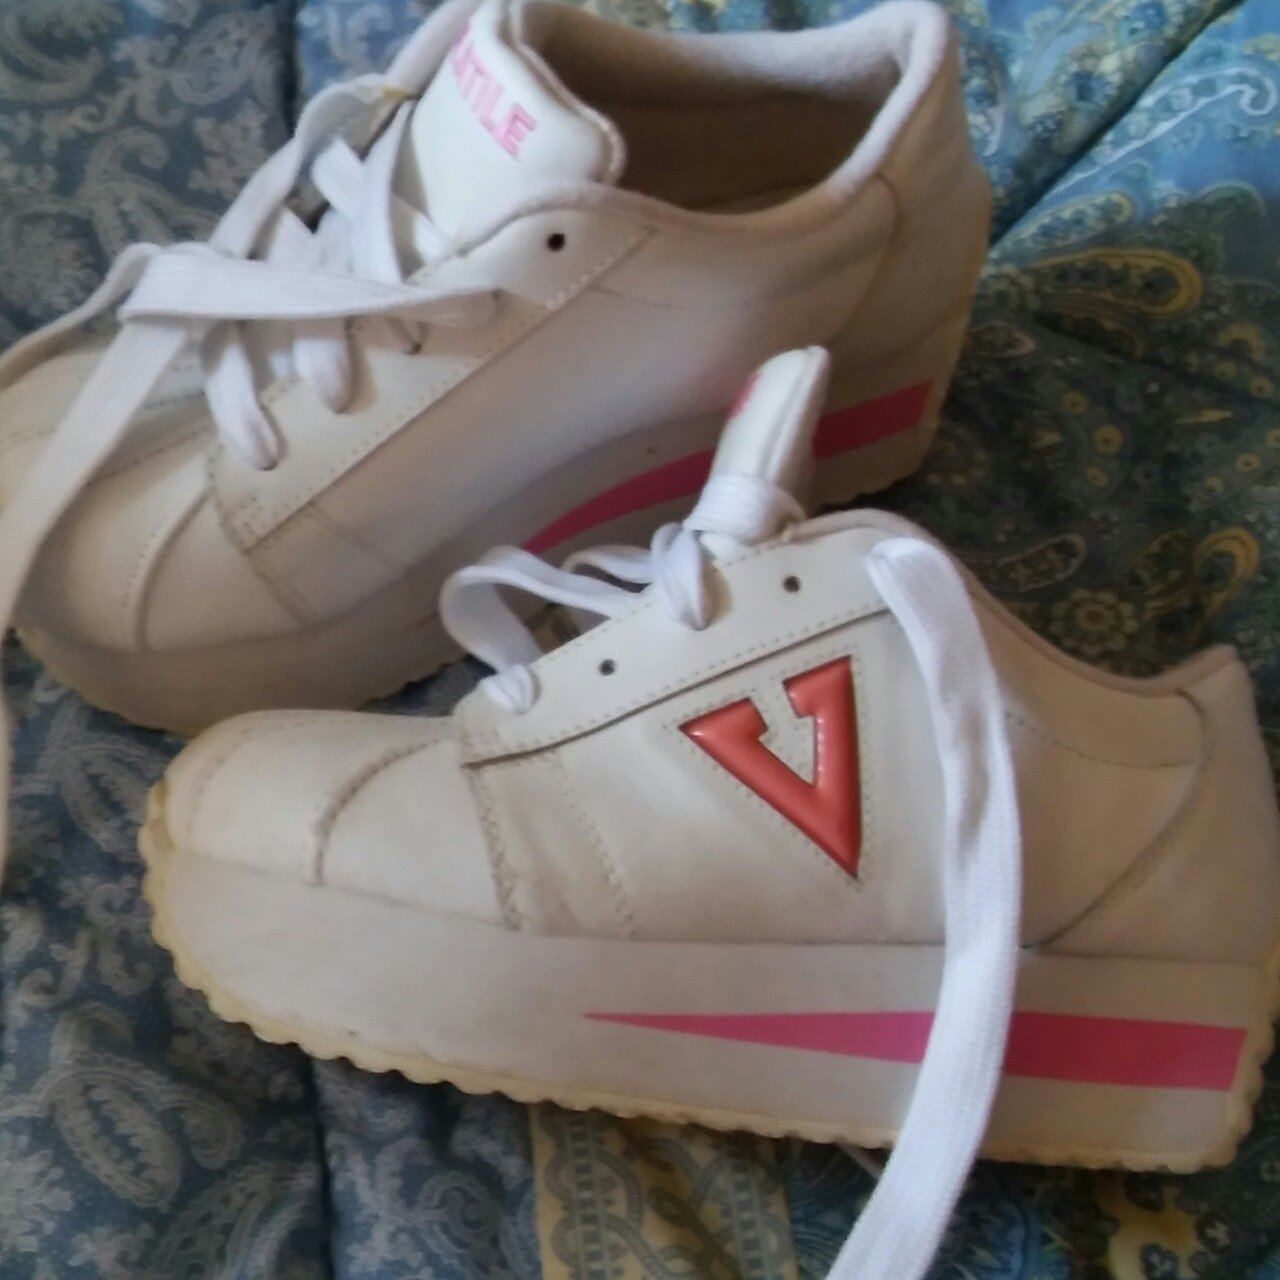 25a2c6e63ebf VOLATILE PLATFORM SNEAKERZ Like new